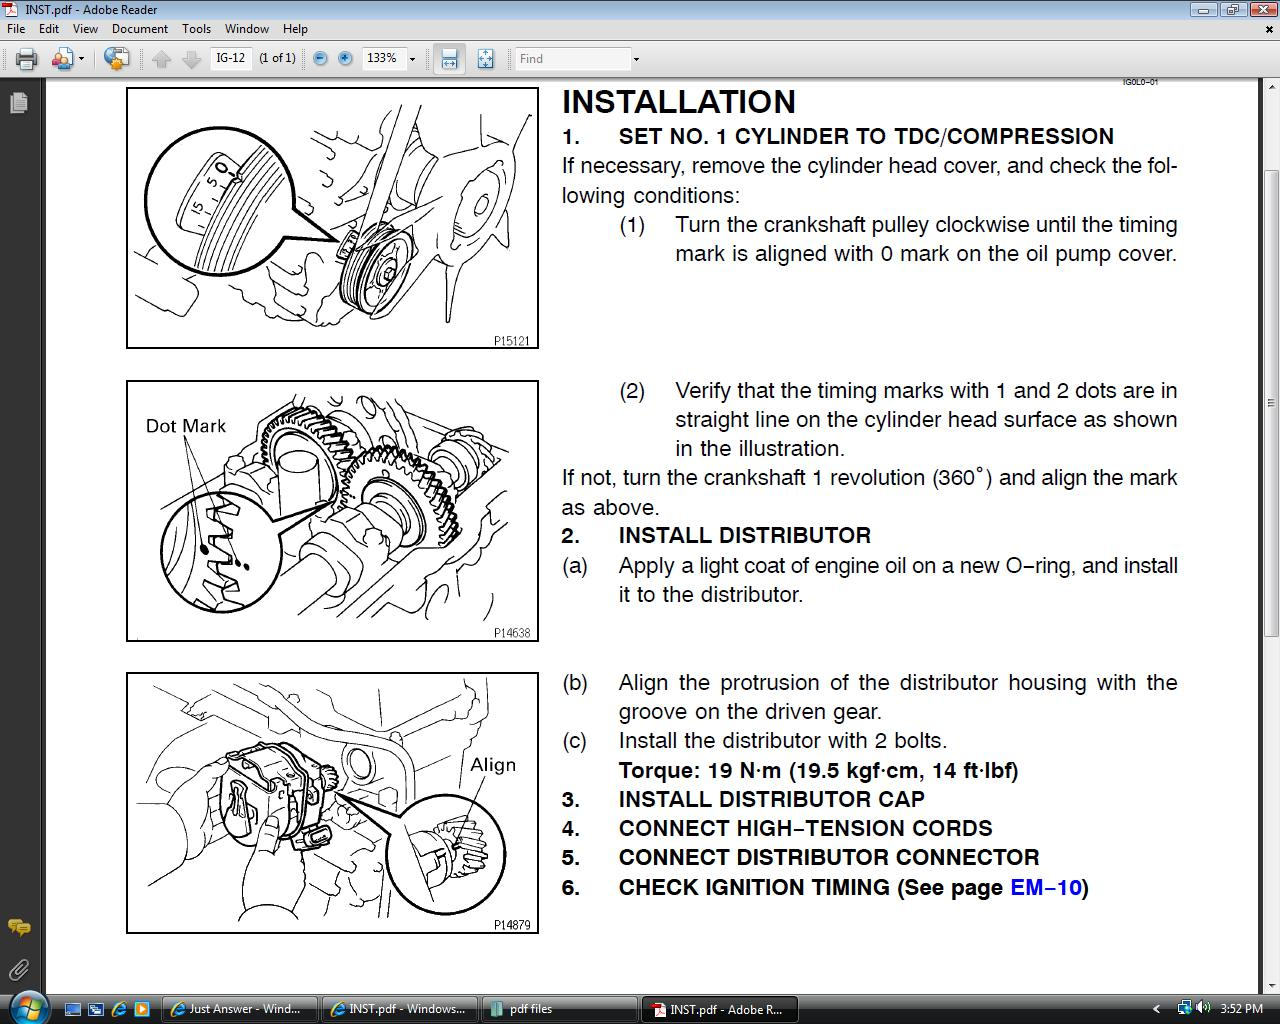 080 1997 toyota tacoma engine diagram | wiring resources toyota tacoma 2 7 engine diagram 3rz engine turbo wiring resources